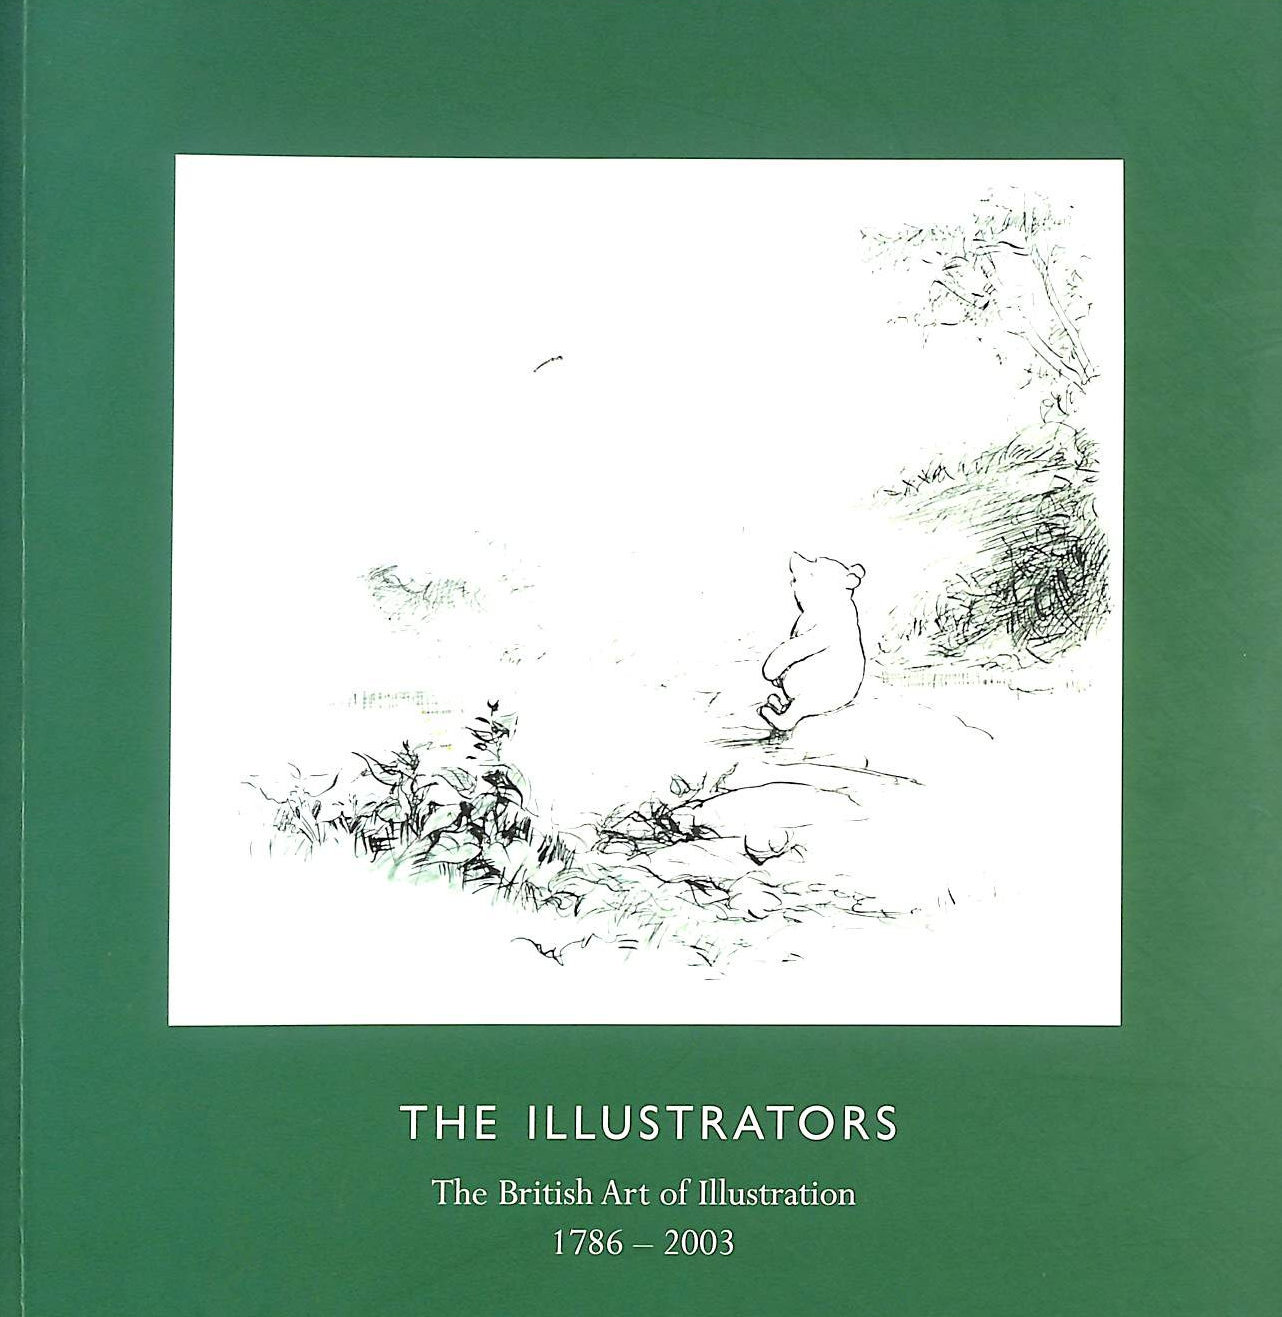 Image for The Illustrators: The British Art of Illustration (1786-2003)